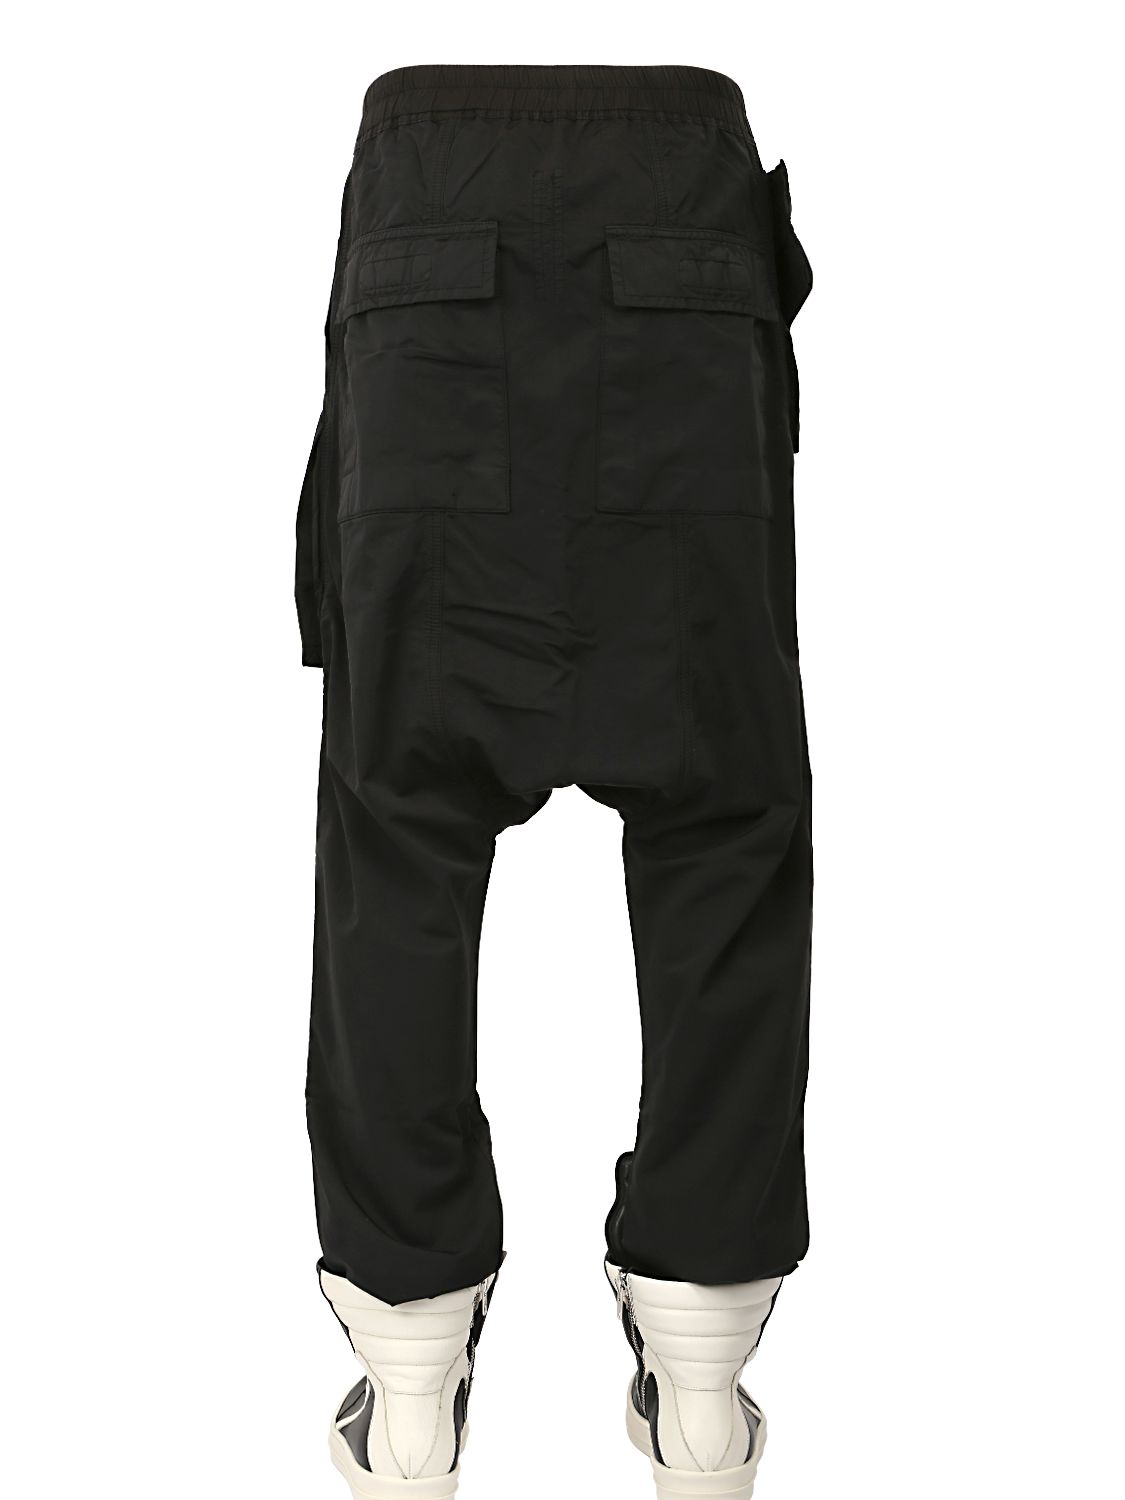 Rick Owens Drkshdw Cotton Nylon Long Rise Pants In Black